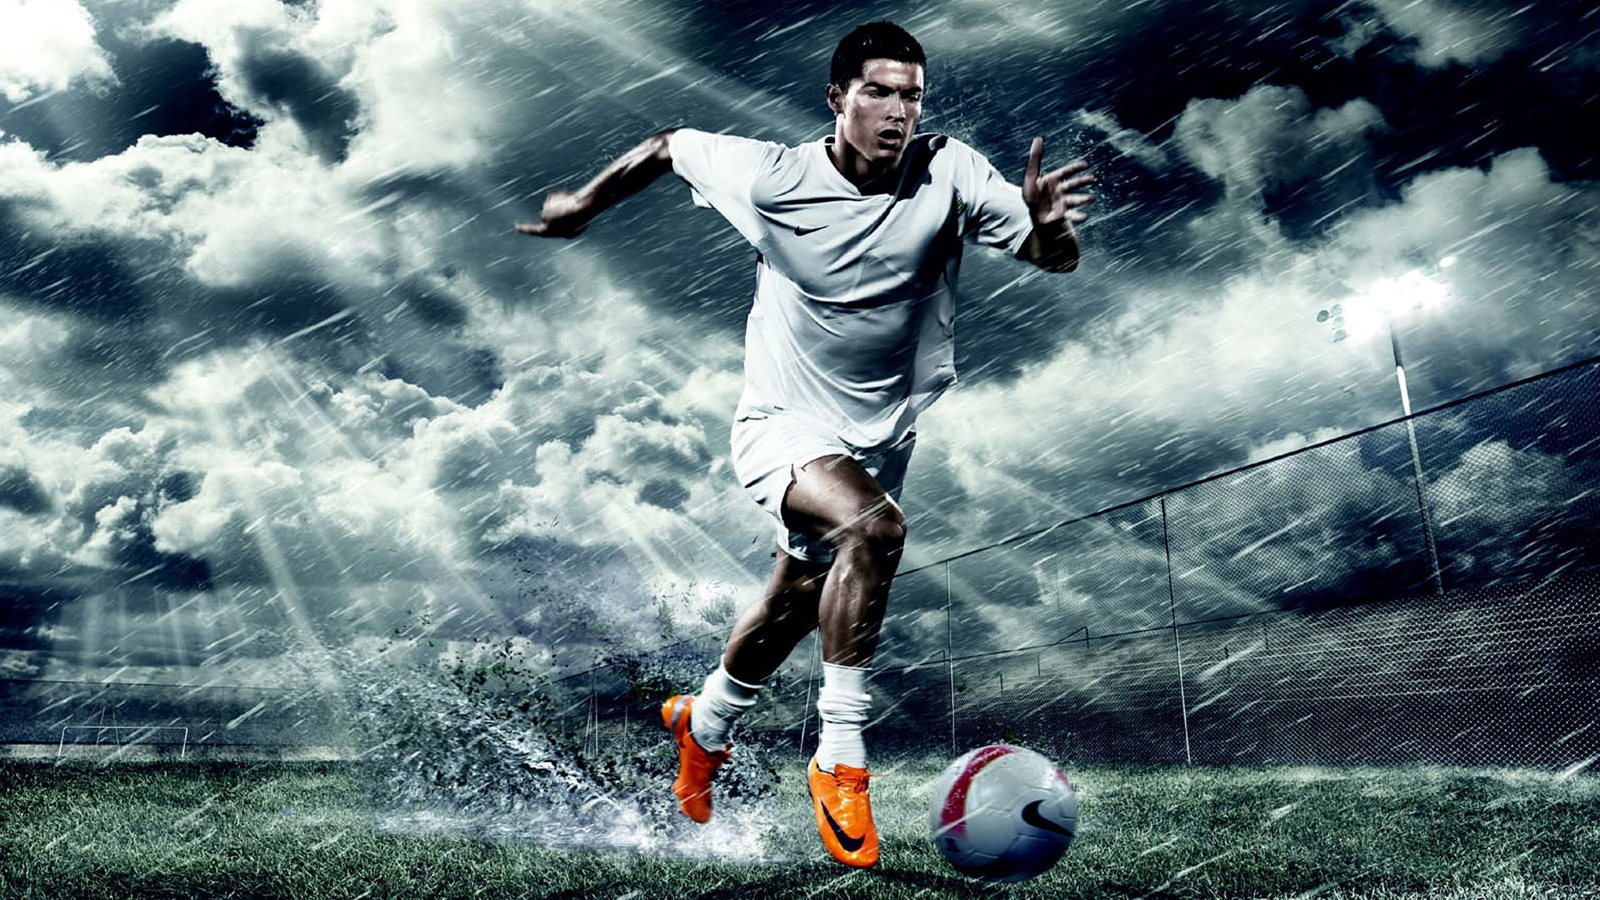 http://1.bp.blogspot.com/-TQZgb8bQSs4/TnfRsHe2xWI/AAAAAAAABL0/ir8nvjhz3i0/s1600/cristian_ronaldo_hdr_on_the_field_rain_theme_wallpapers_Vvallpaper.net.jpg